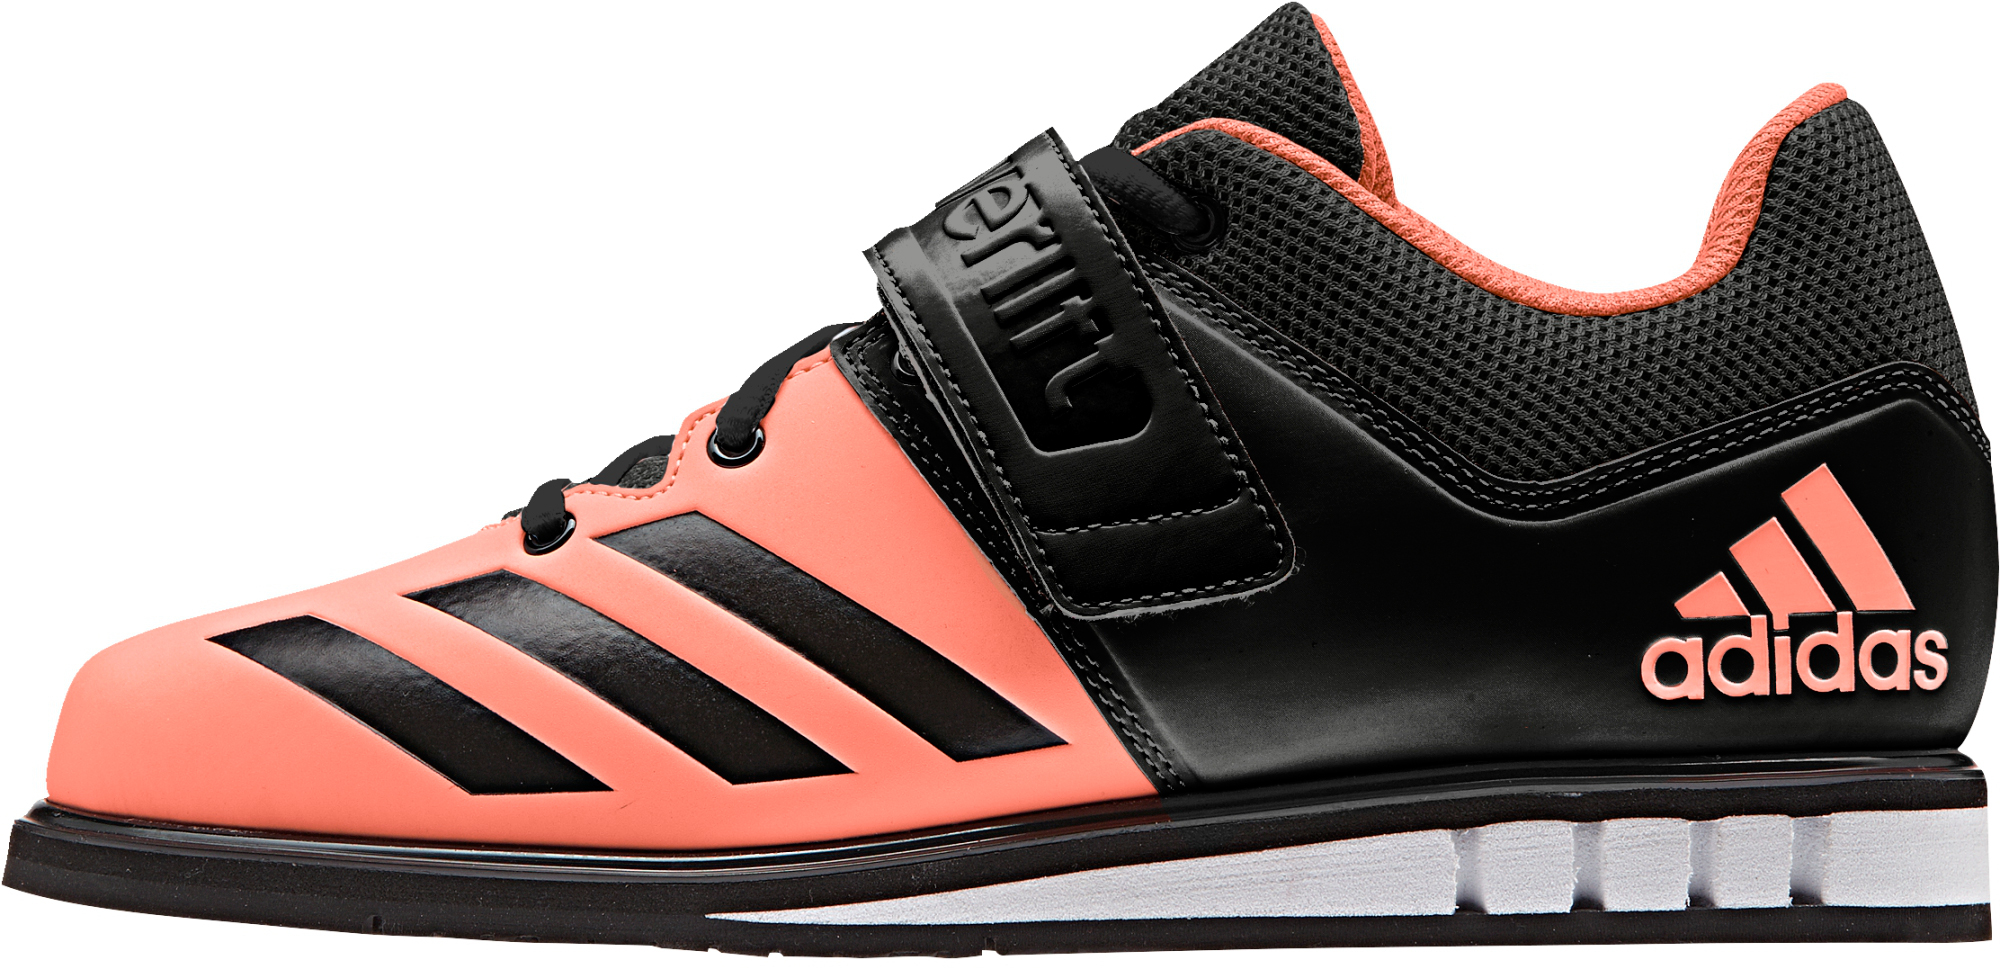 adidas powerlift 3 colors